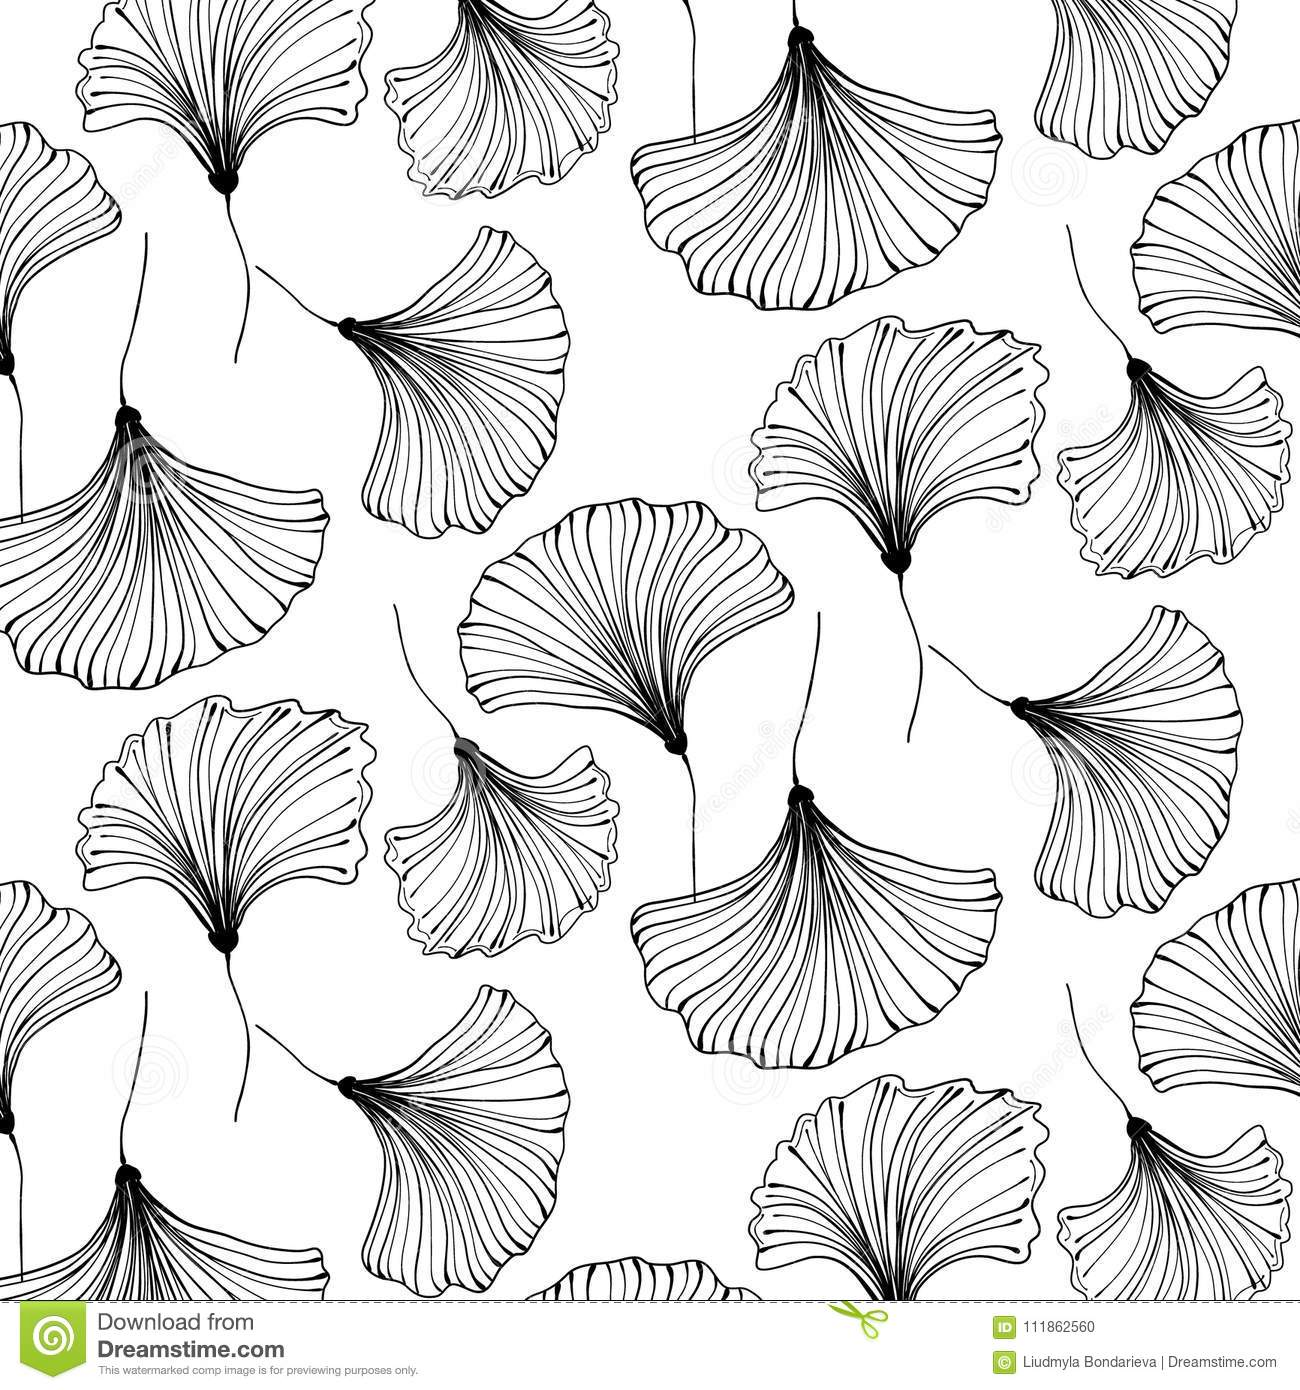 Vector japanese gingko beautiful background floral textile decoration vintage leaf pattern interior design